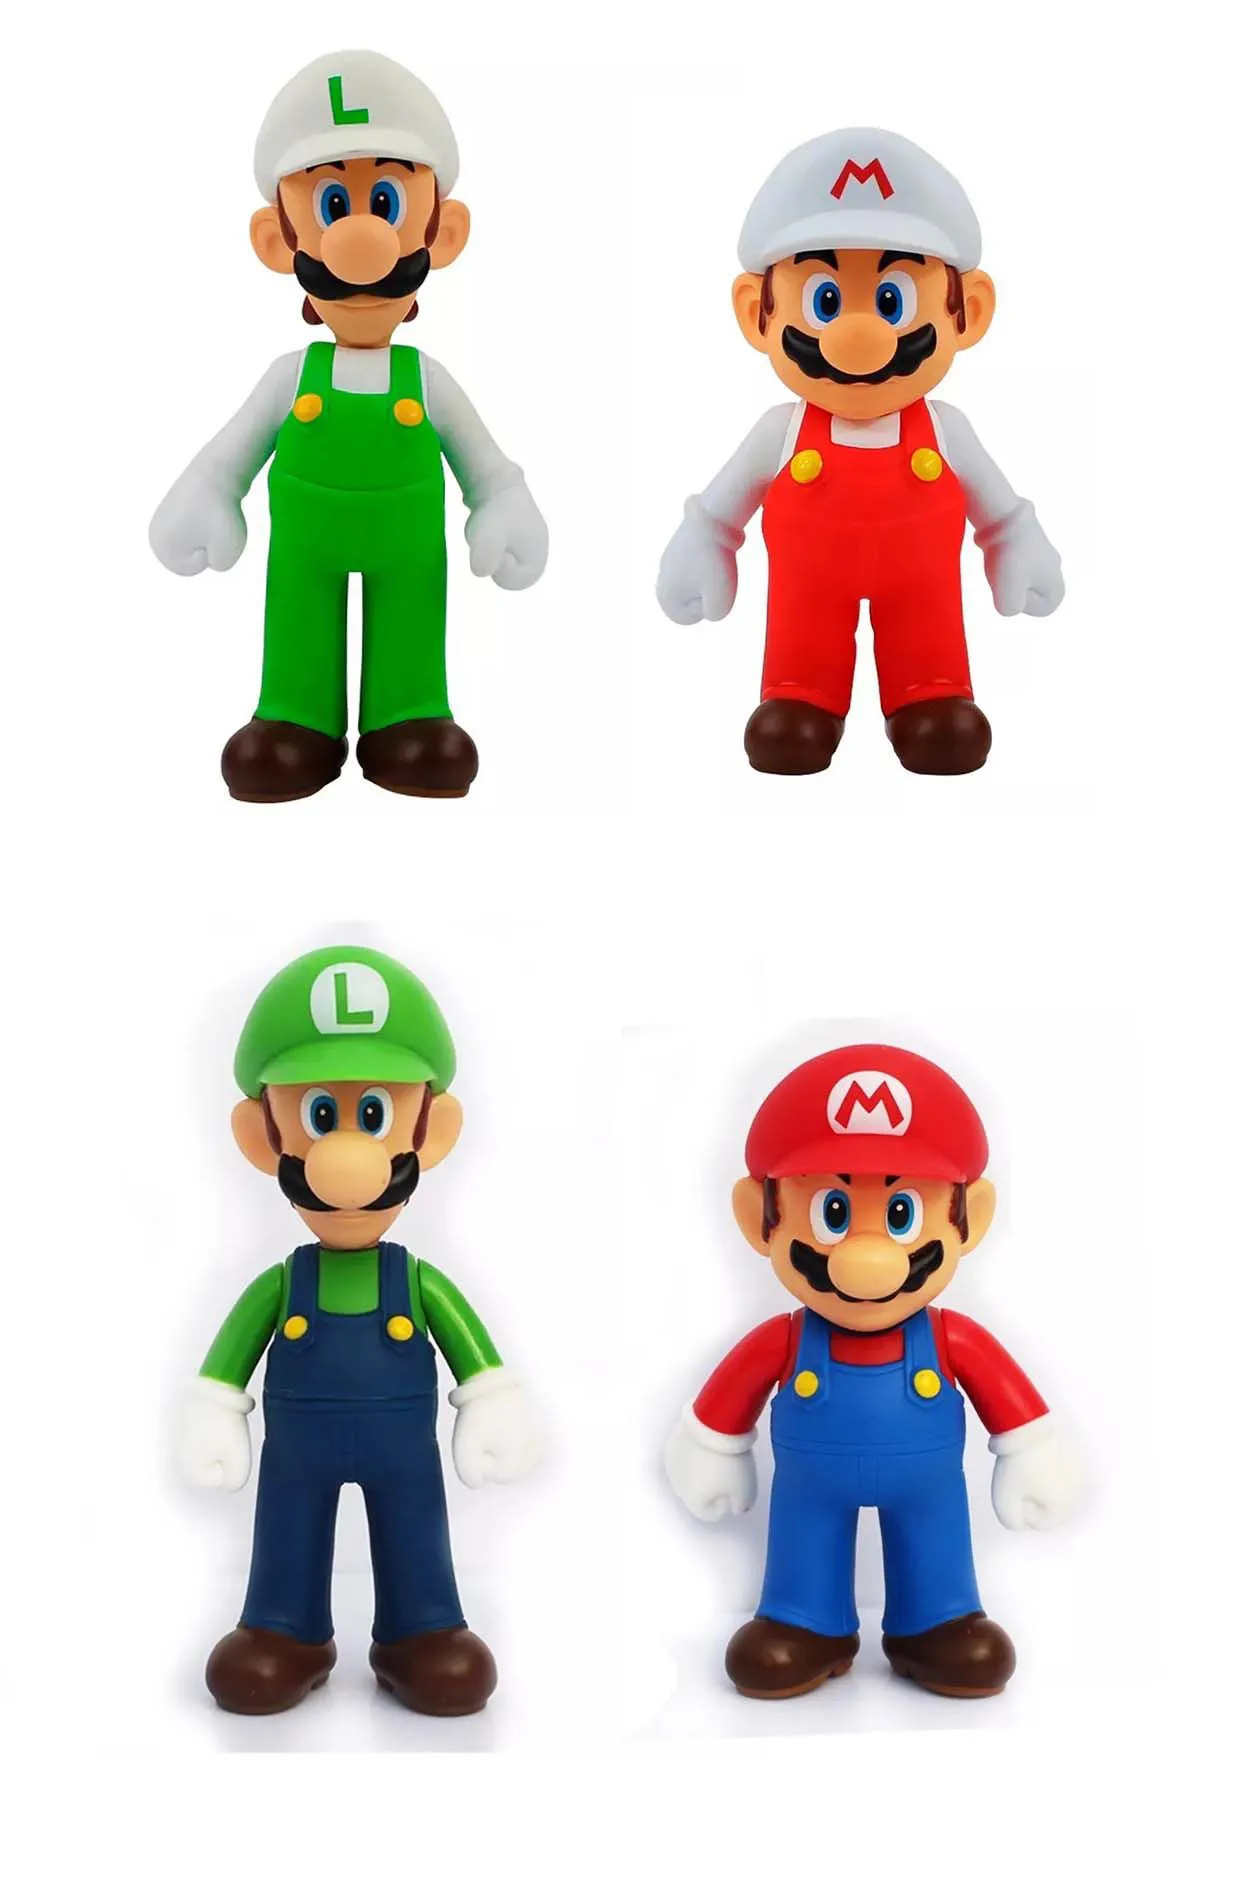 Super Mario Bros - Banpresto Action Figure Boneco Luigi Mario